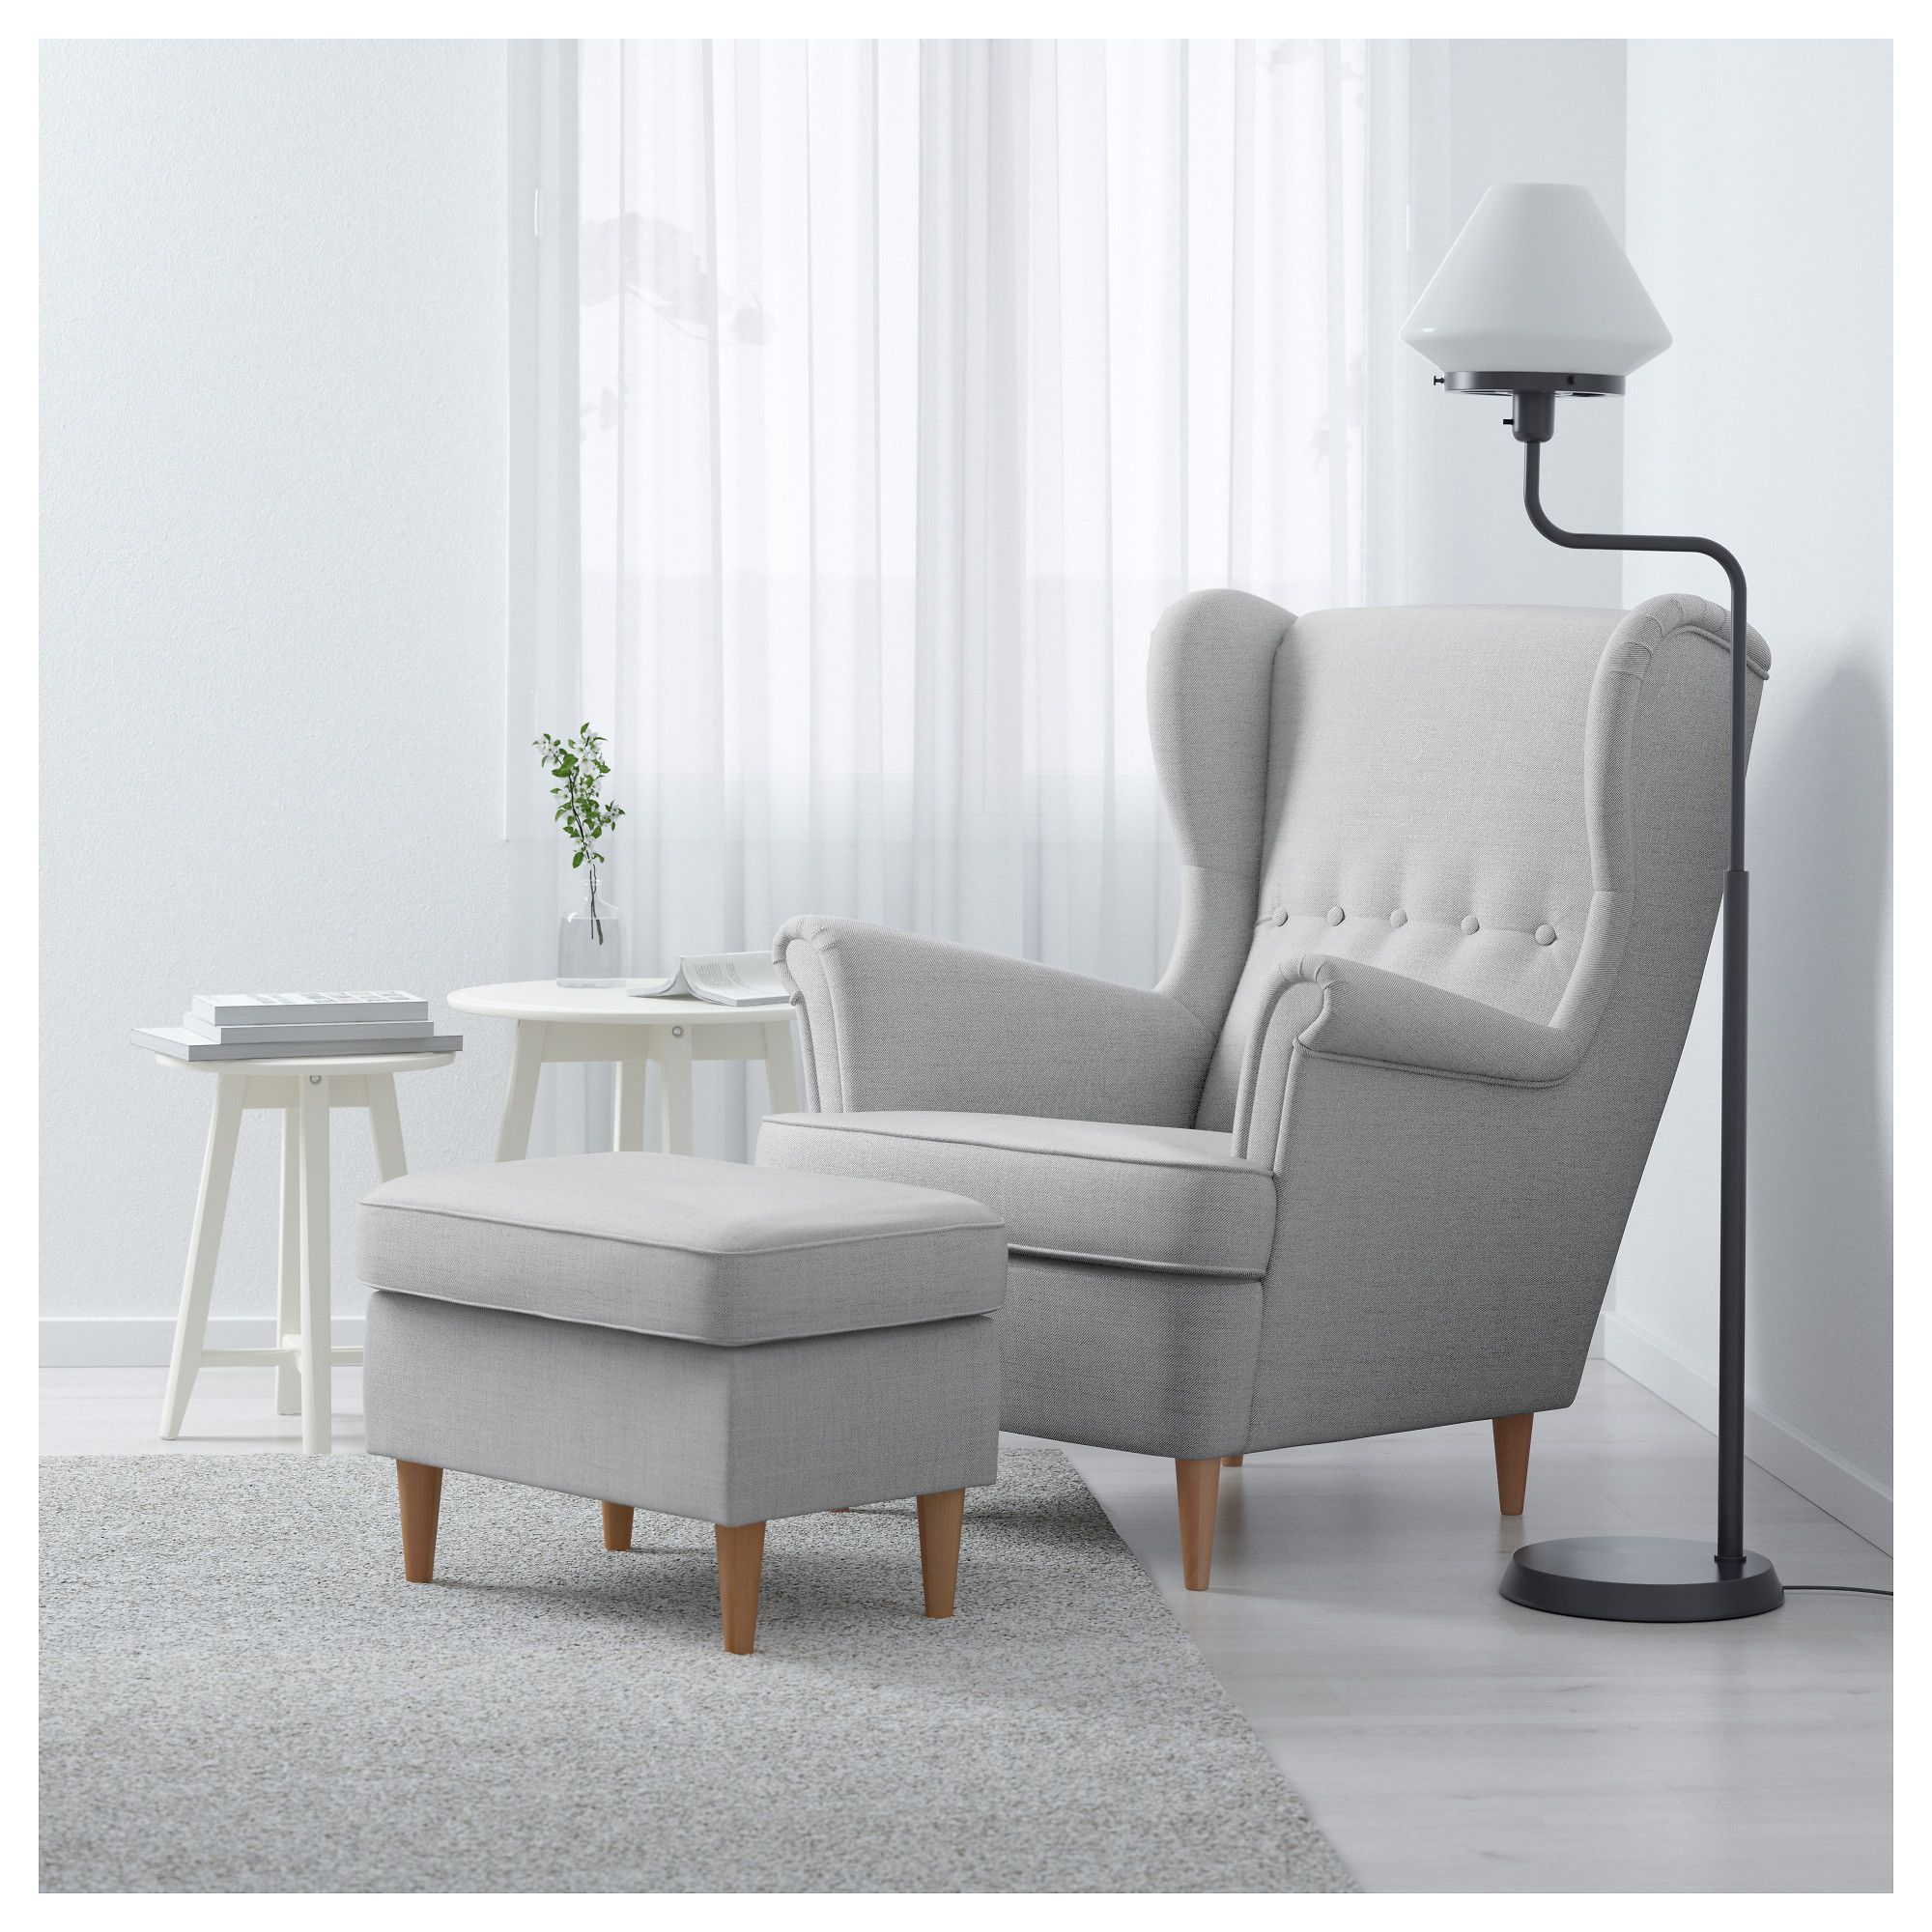 Shop for Furniture, Home Accessories & More Wing chair